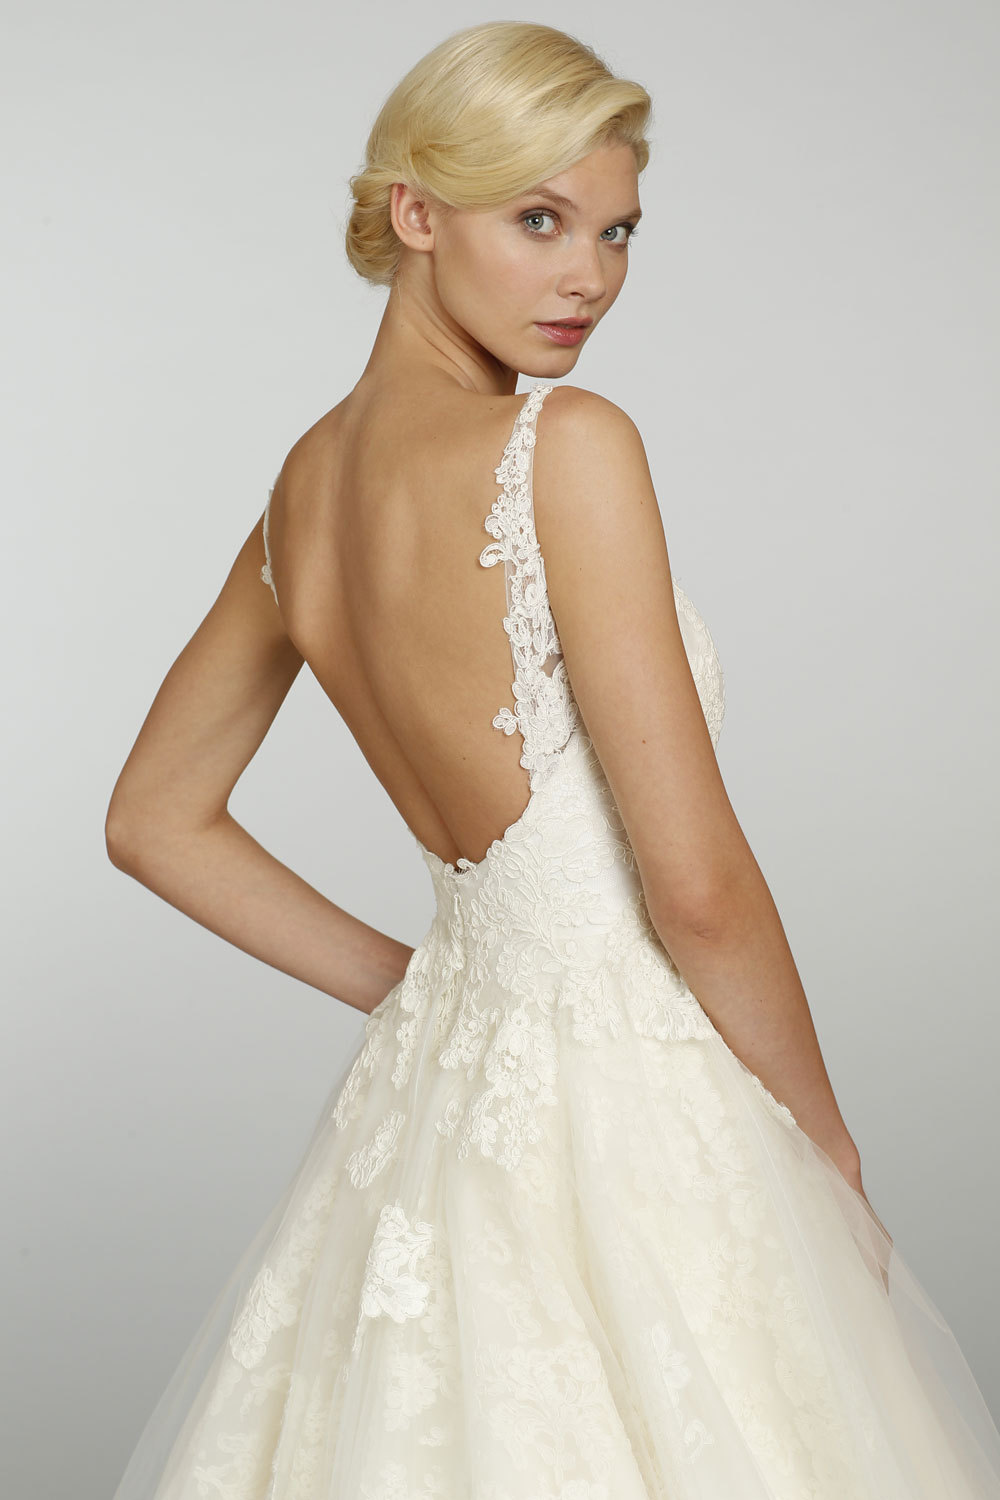 Spring 2013 Wedding Dress Alvina Valenta Bridal 9301